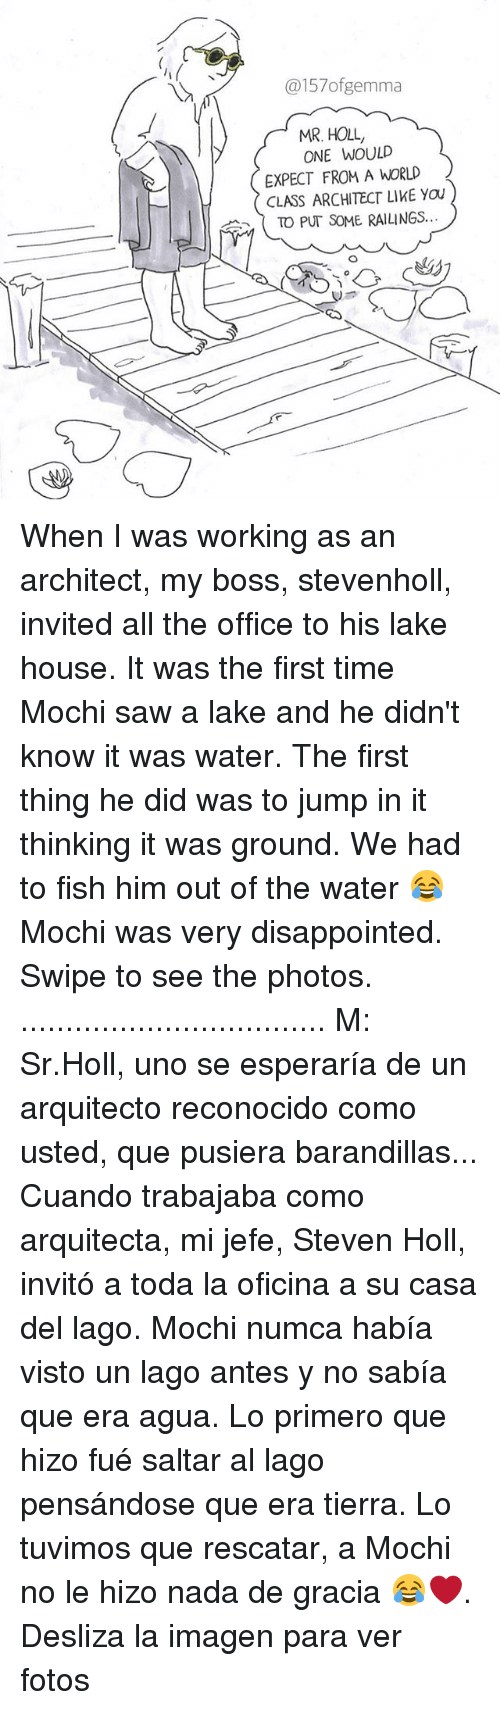 mochi: @157ofgemma  MR. HOLL,  ONE WOULD  EXPECT FROM A WORLD  CLASS ARCHITECT LIKE YOU  ( TO PUT SOME RAILINGS  c曲 When I was working as an architect, my boss, stevenholl, invited all the office to his lake house. It was the first time Mochi saw a lake and he didn't know it was water. The first thing he did was to jump in it thinking it was ground. We had to fish him out of the water 😂 Mochi was very disappointed. Swipe to see the photos. .................................. M: Sr.Holl, uno se esperaría de un arquitecto reconocido como usted, que pusiera barandillas... Cuando trabajaba como arquitecta, mi jefe, Steven Holl, invitó a toda la oficina a su casa del lago. Mochi numca había visto un lago antes y no sabía que era agua. Lo primero que hizo fué saltar al lago pensándose que era tierra. Lo tuvimos que rescatar, a Mochi no le hizo nada de gracia 😂❤️. Desliza la imagen para ver fotos